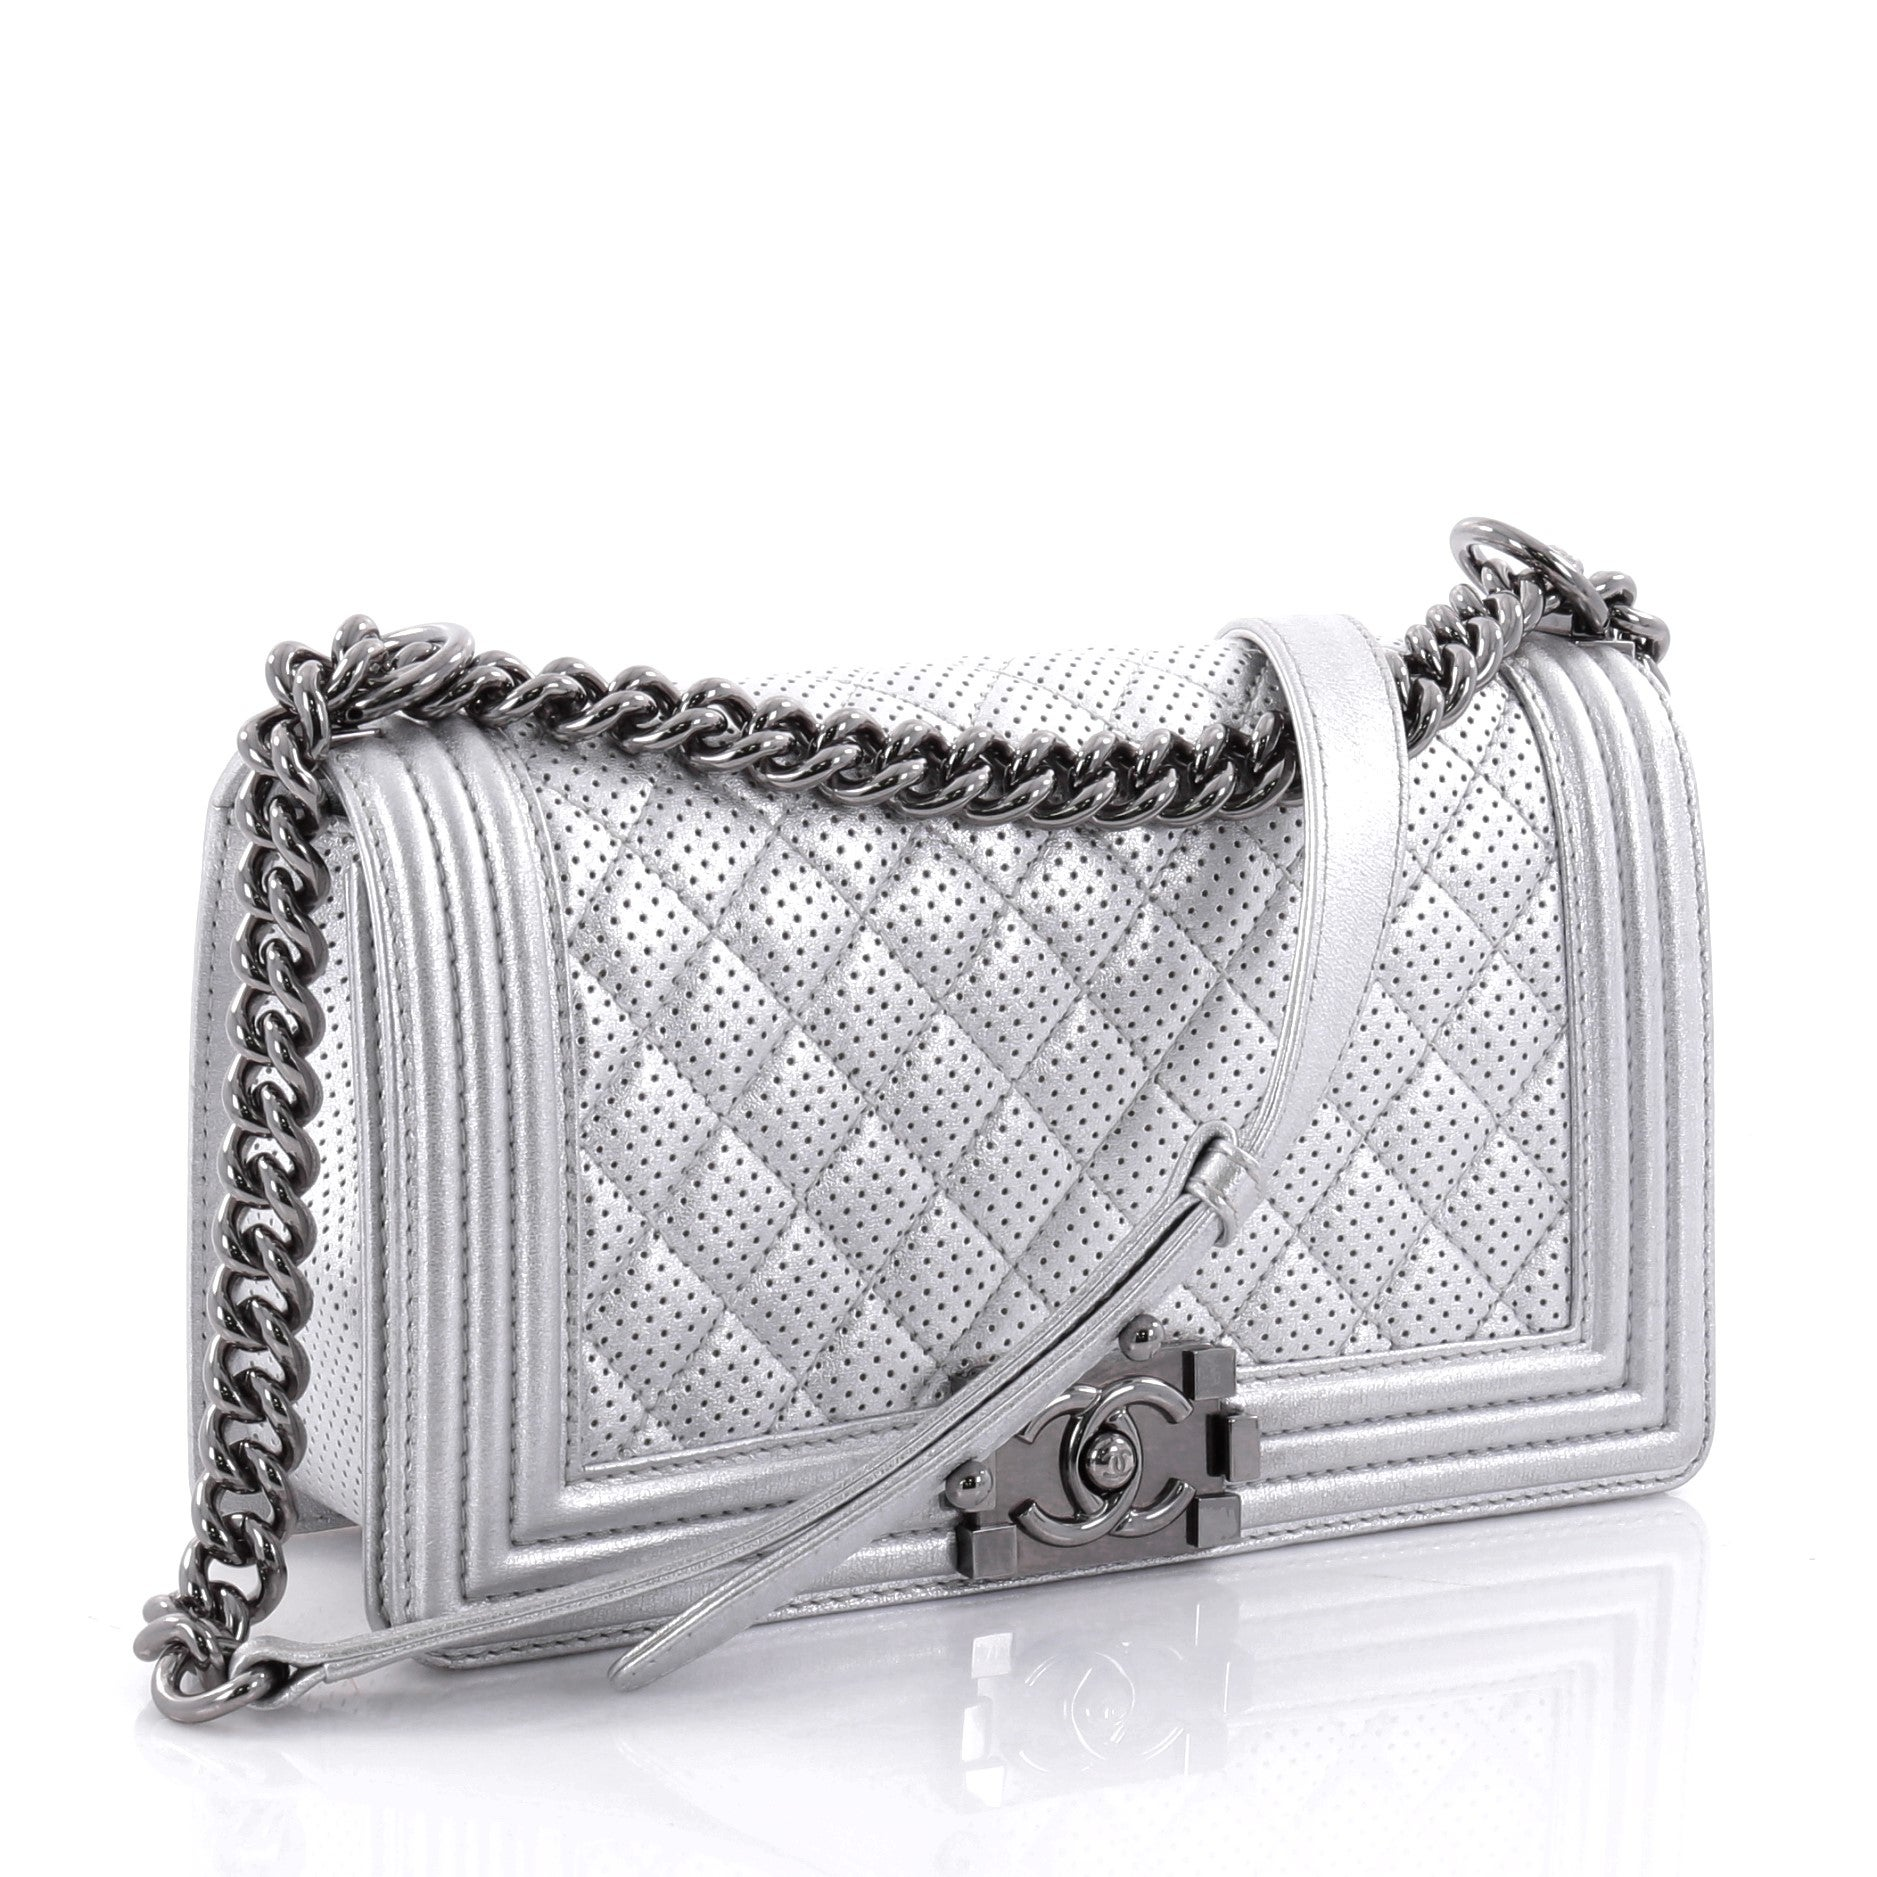 d790bcfddaaa Chanel Boy Flap Bag Quilted Perforated Lambskin Old Medium at 1stdibs